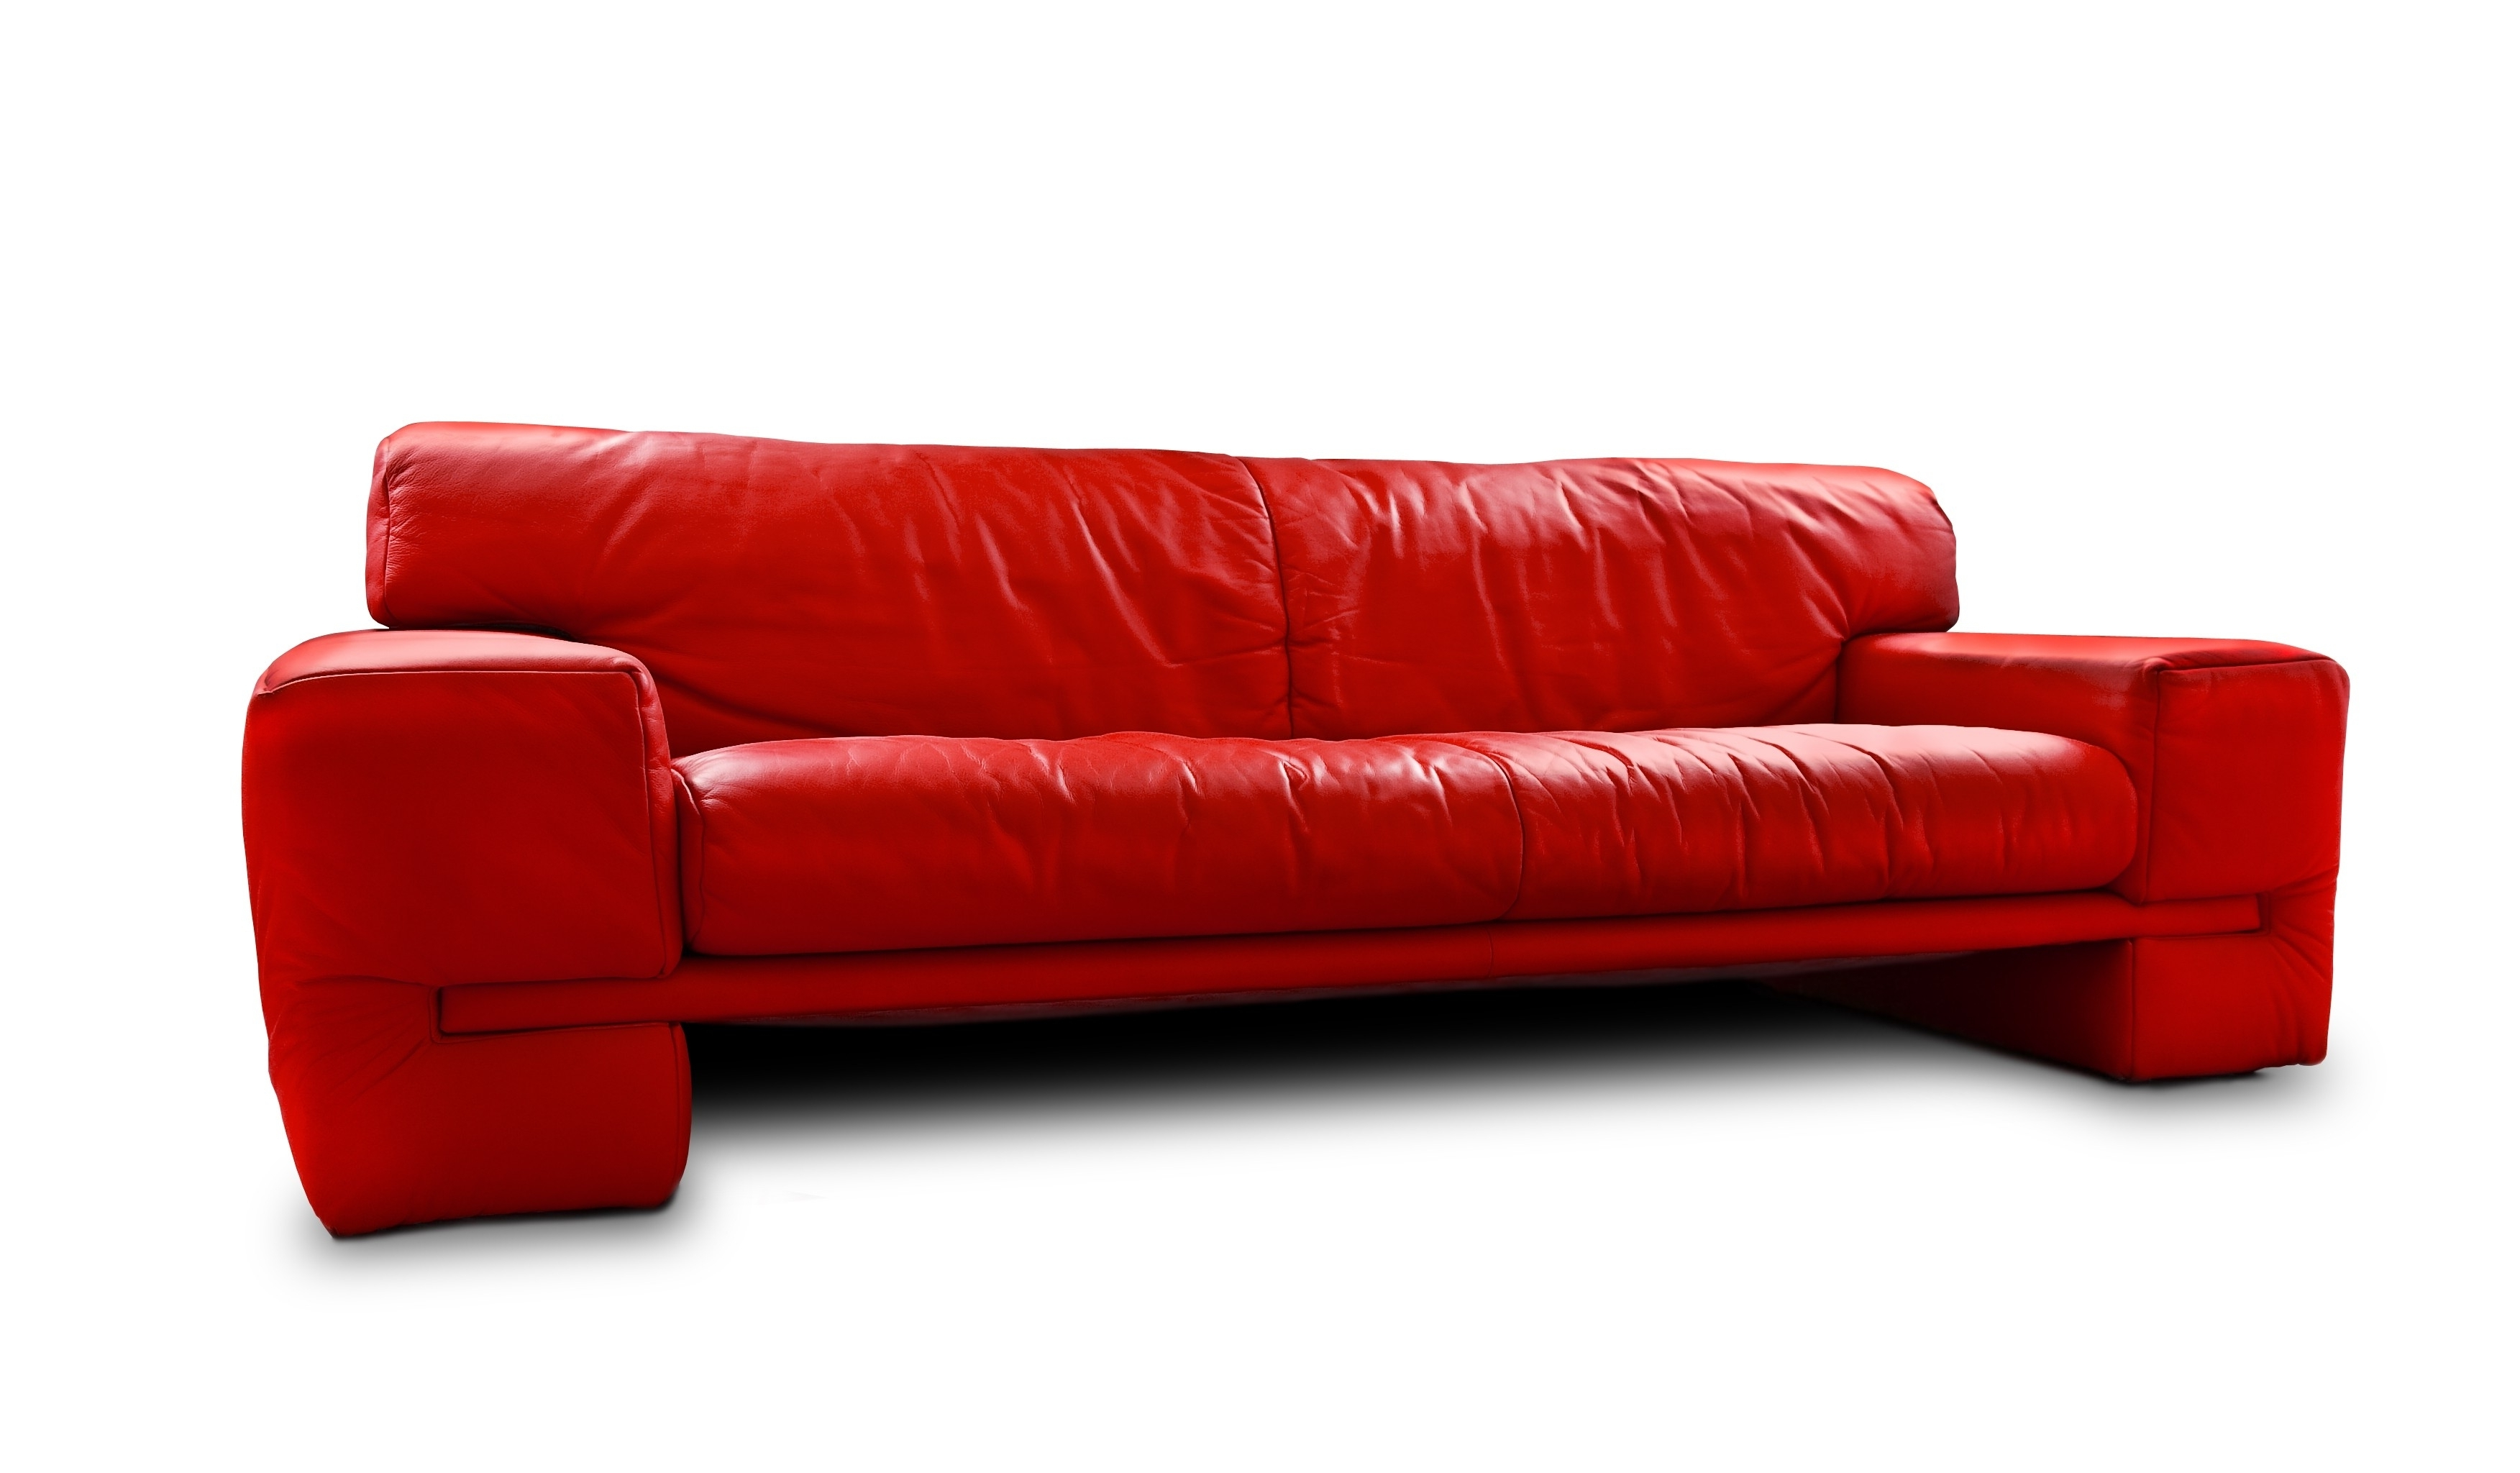 Captivating Red Leather Sleeper Sofa Cool Home Furniture Ideas Pertaining To 2017 Red Sleeper Sofas (View 4 of 15)